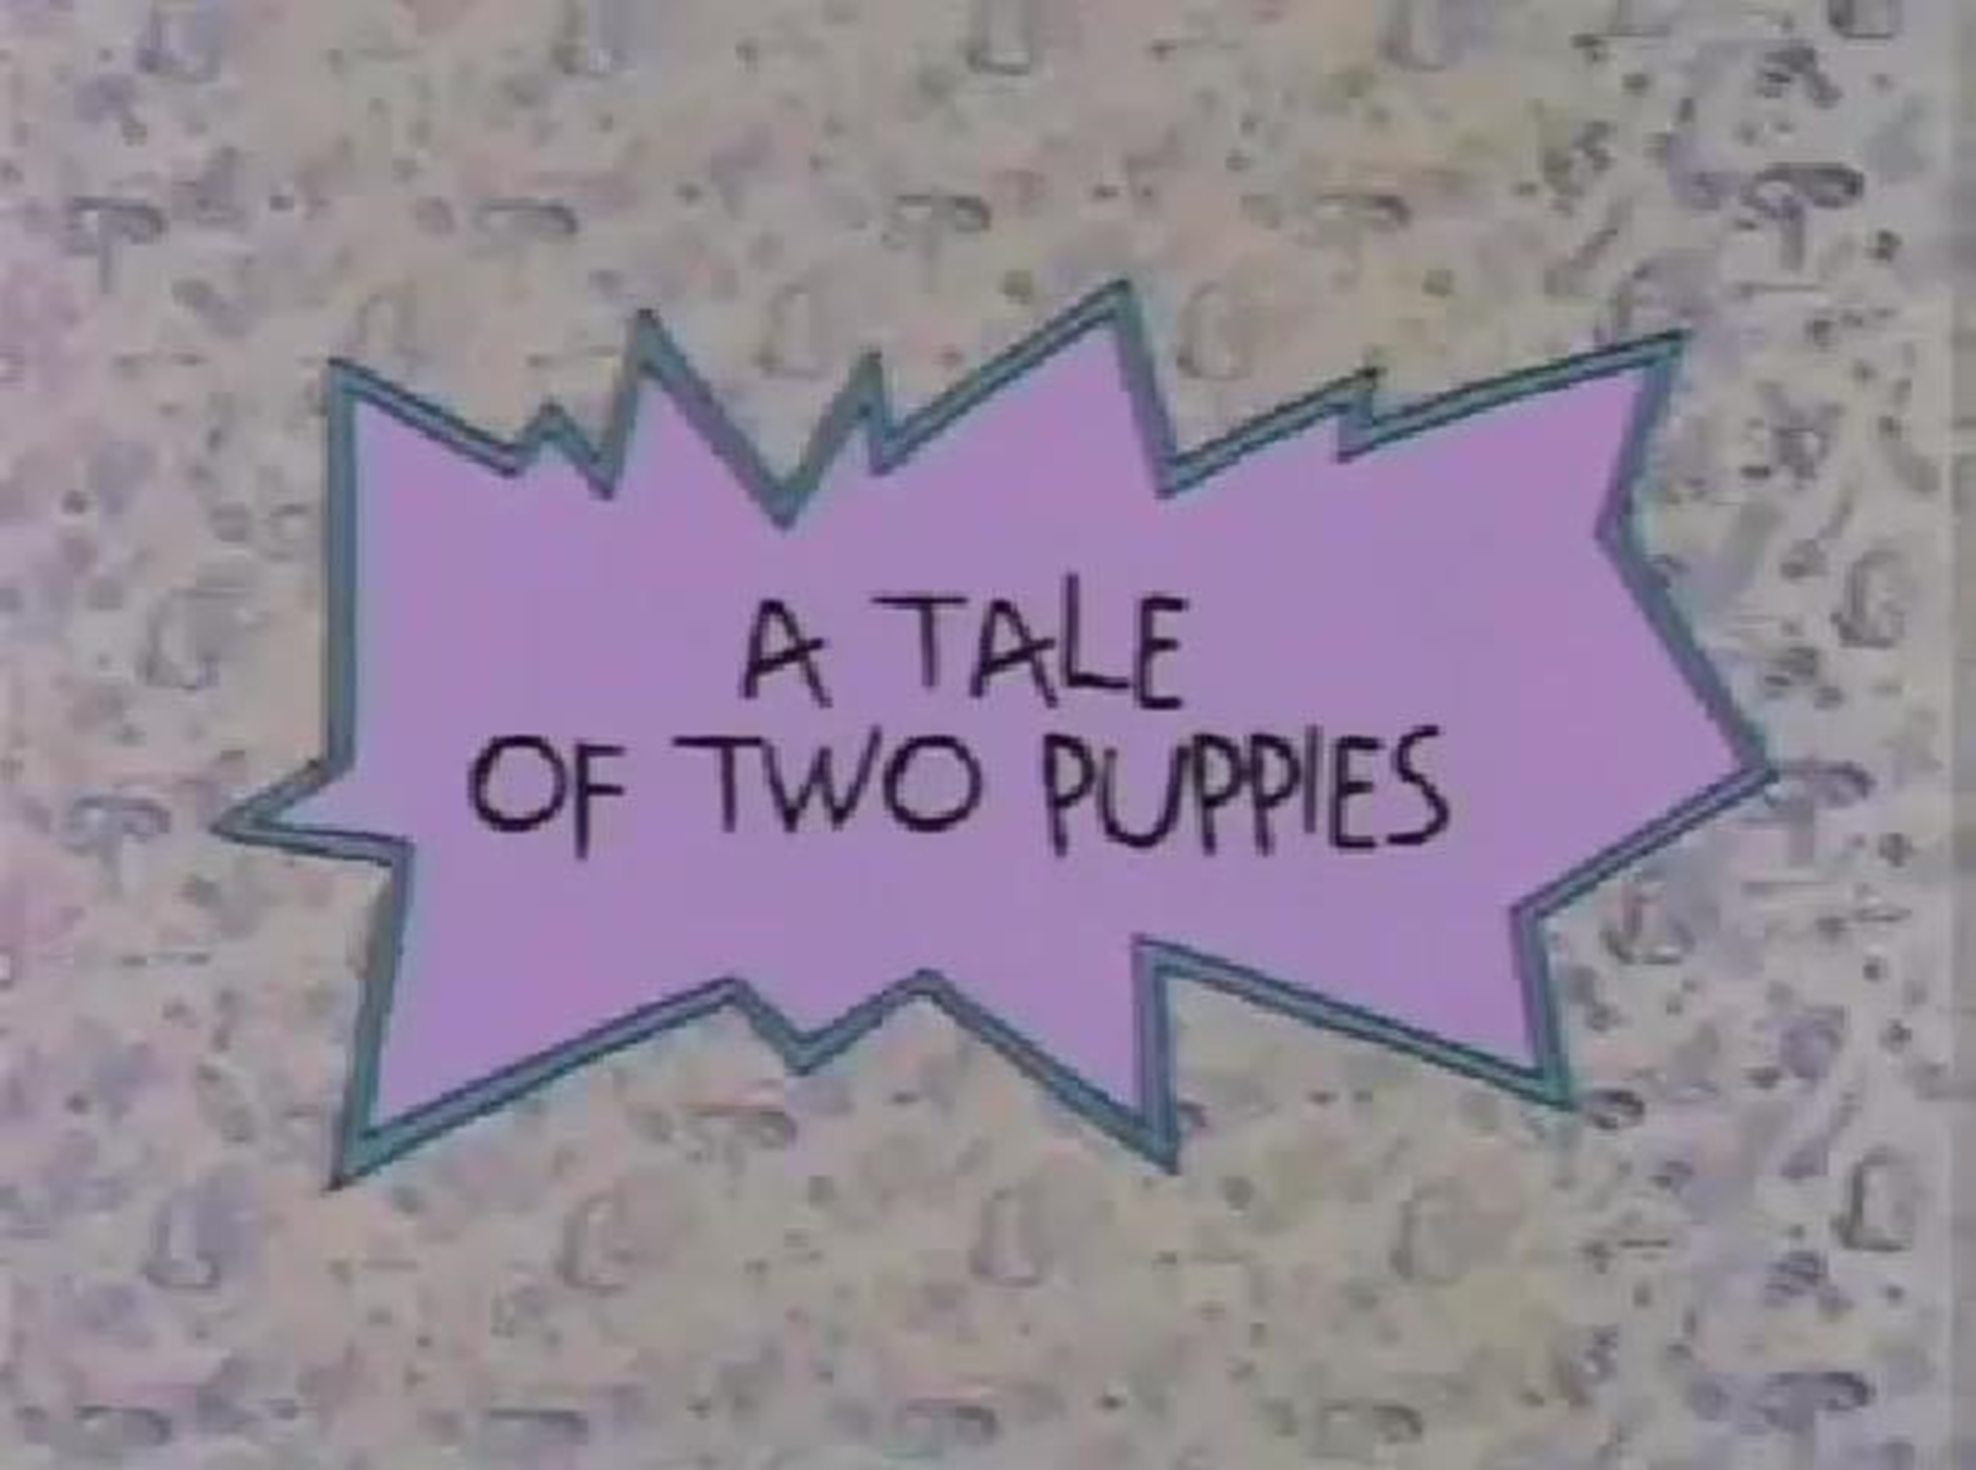 A Tale of Two Puppies